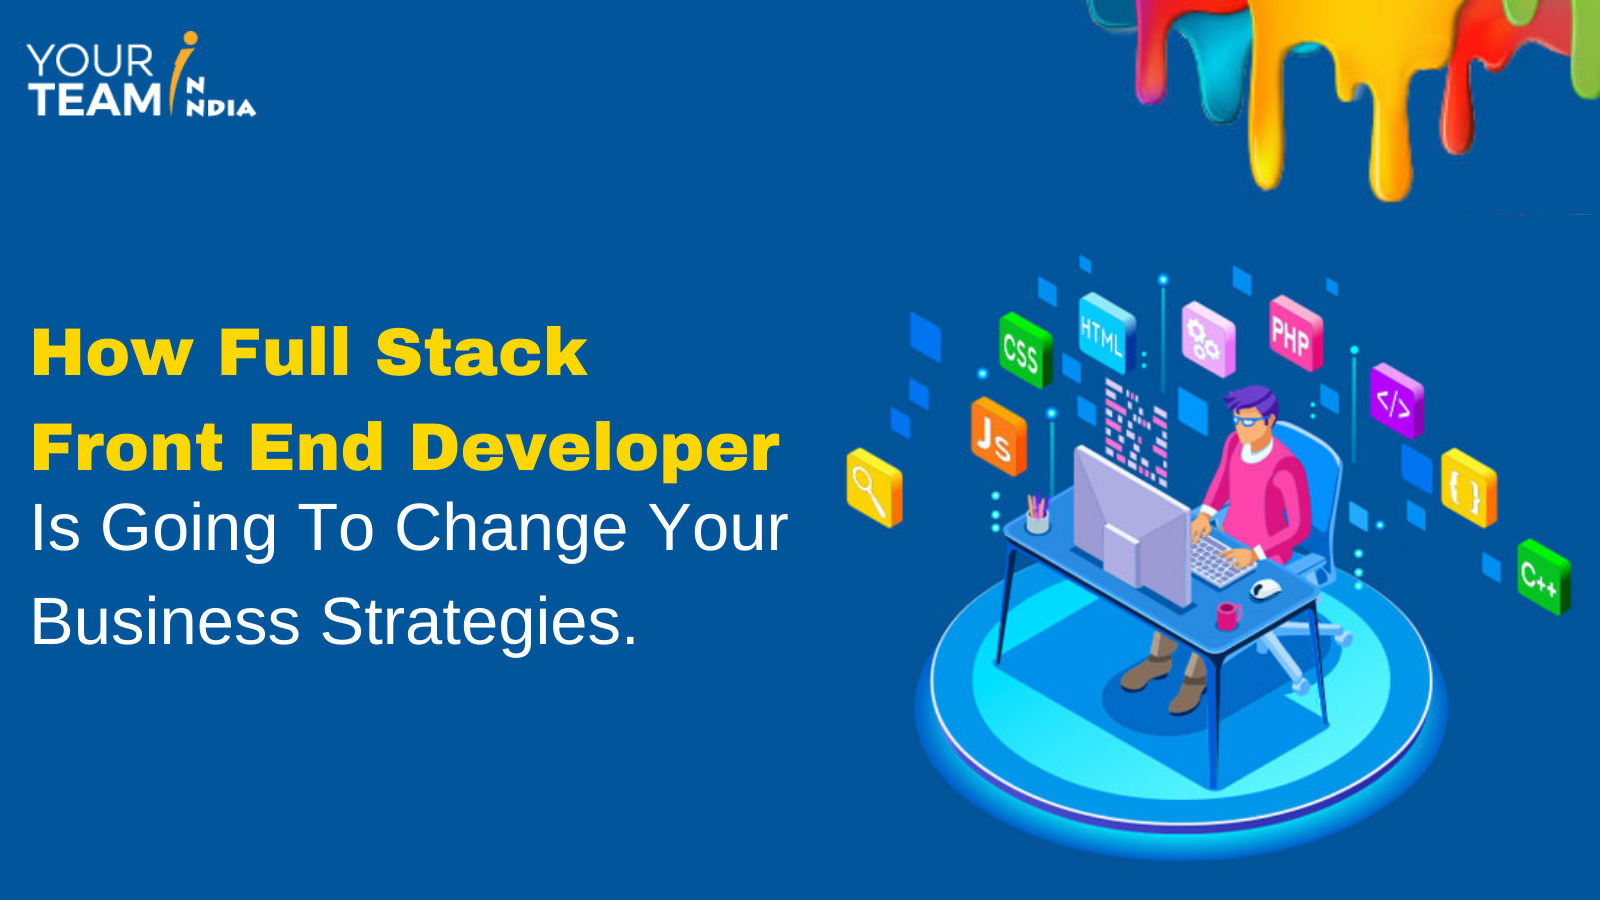 Hire Dedicated Full-Stack Front-End Developers For Business